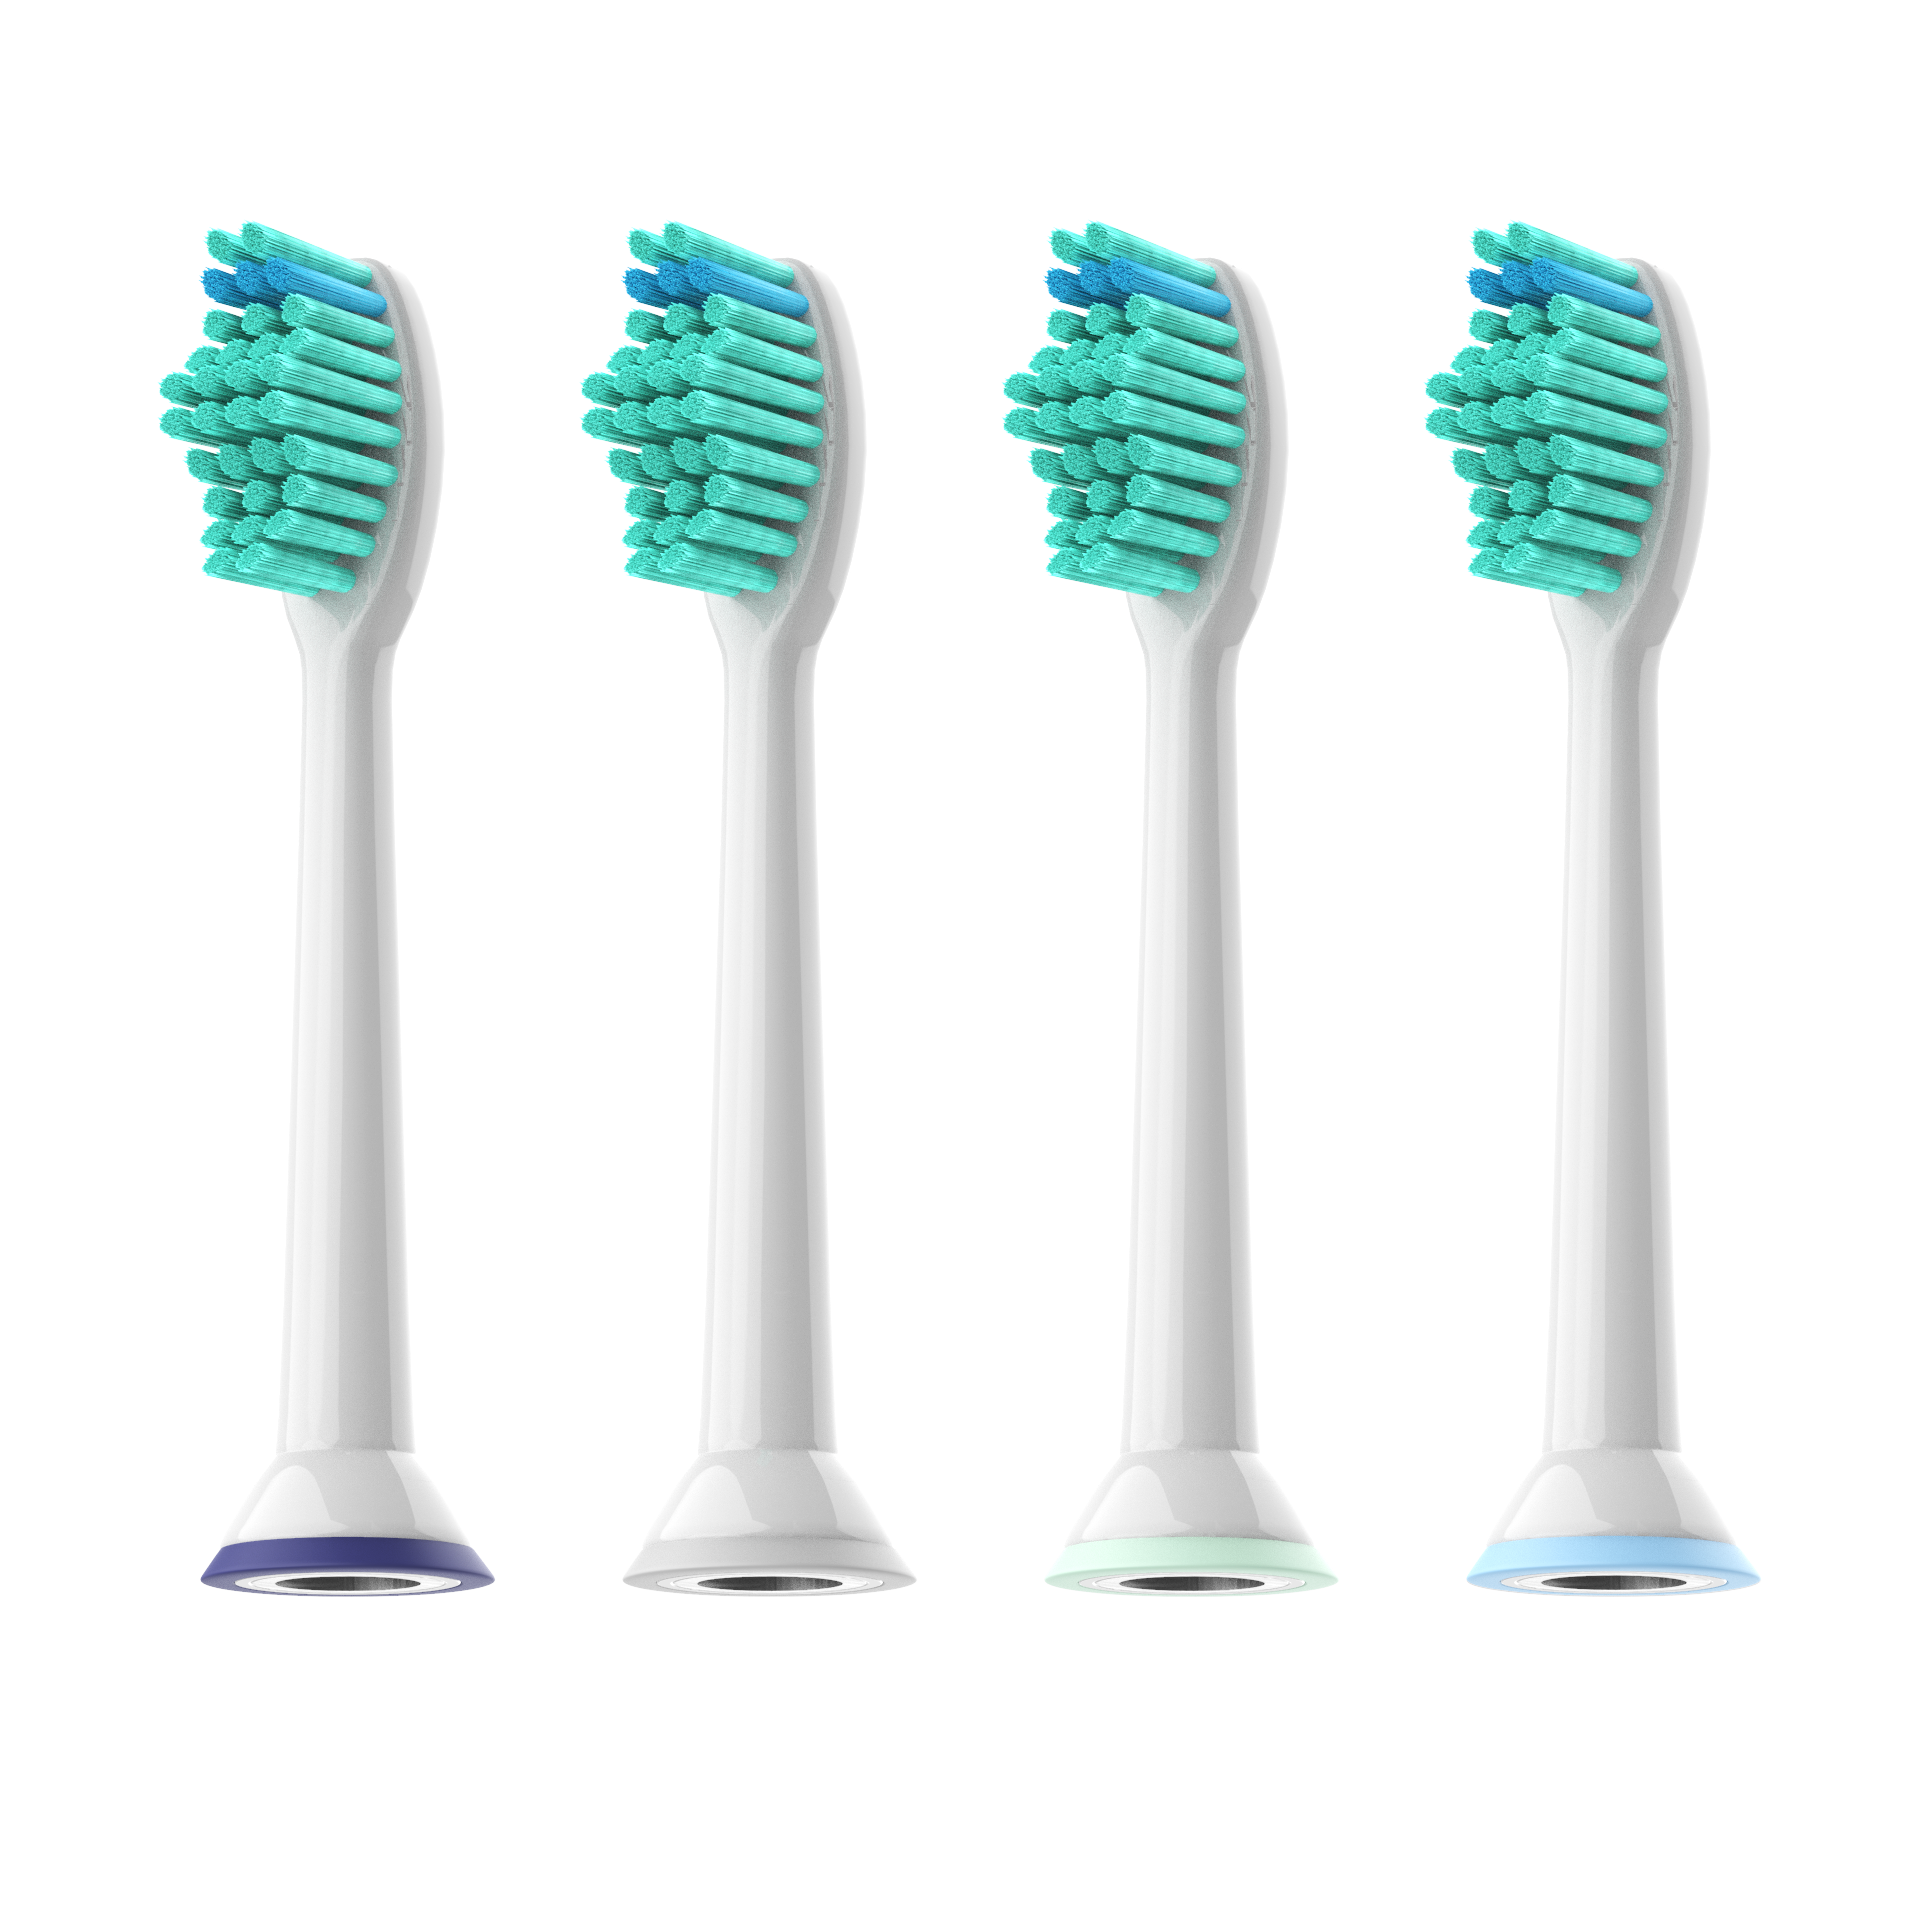 20pcs/lot Replacement Toothbrush Heads for Philips Sonicare ProResults HX6013/66 HX6530 HX9340 HX6930 HX6950 HX6710 HX9140 image